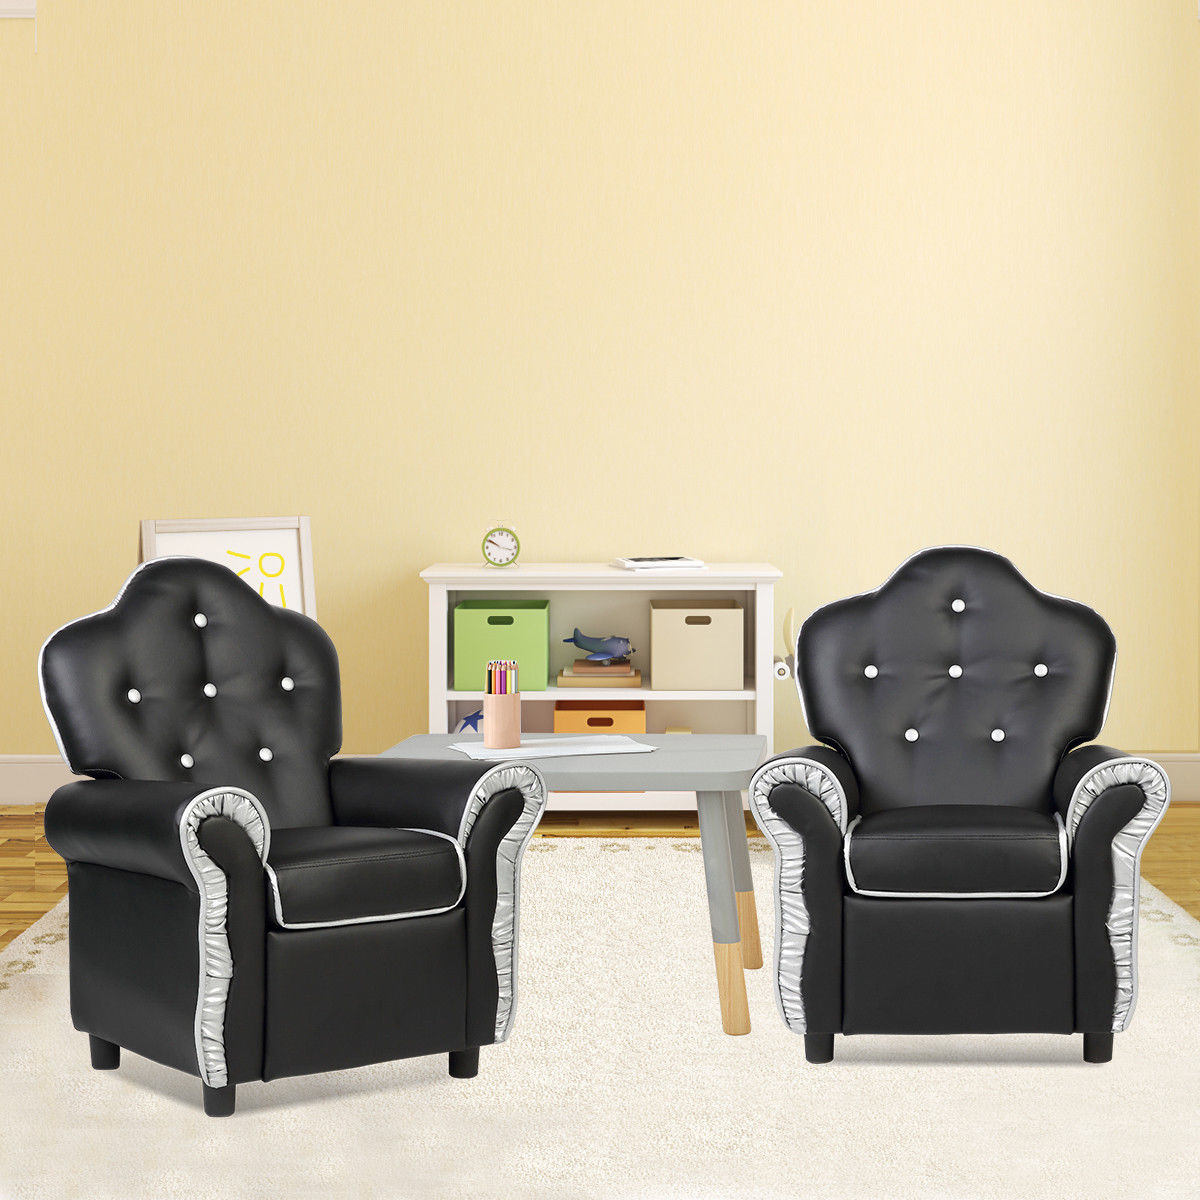 living room furniture sofa chair beautiful art for costway children recliner kids couch black